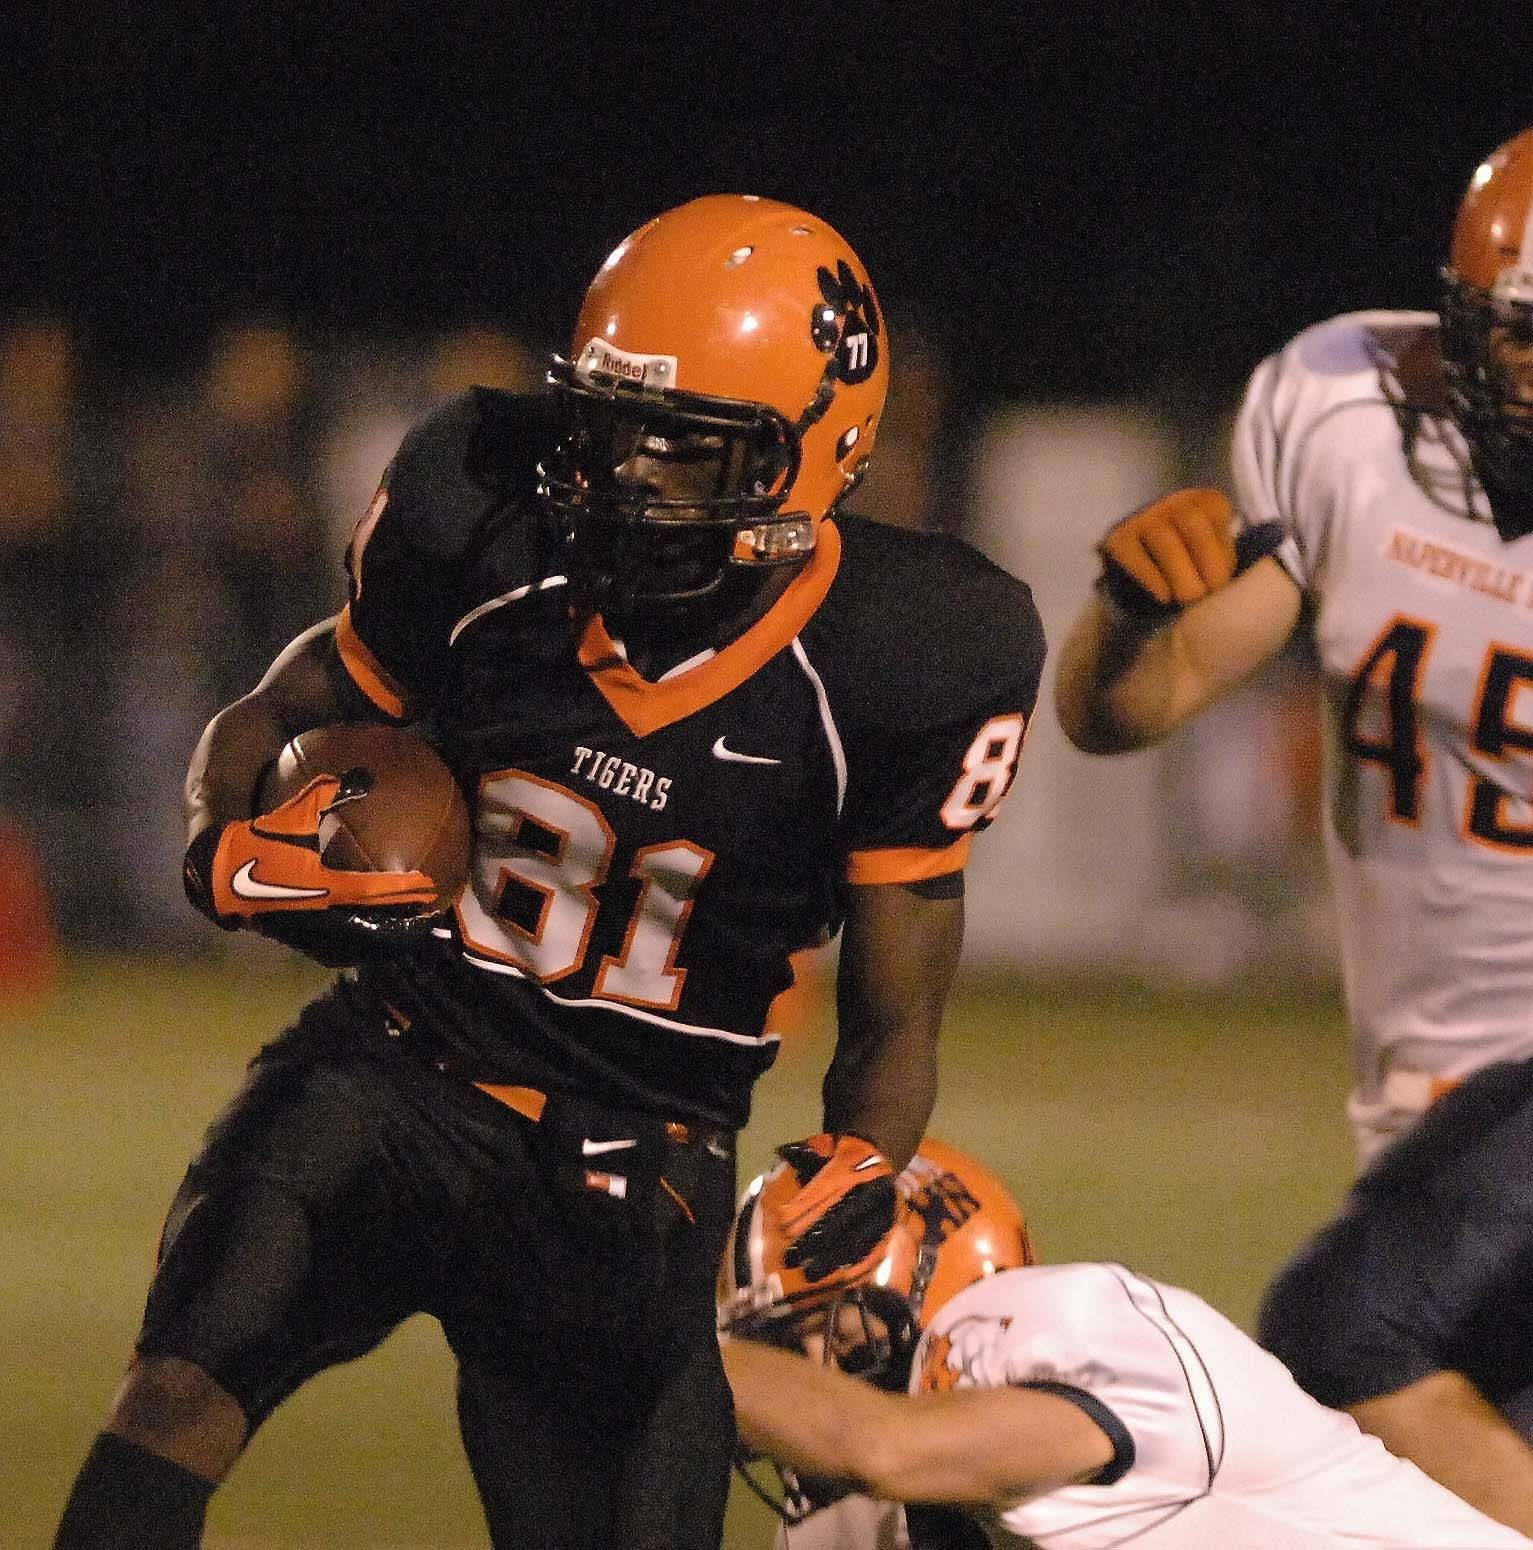 WEEK 5- Davis Titus of Wheaton Warrenville South moves the ball against Naperville North.